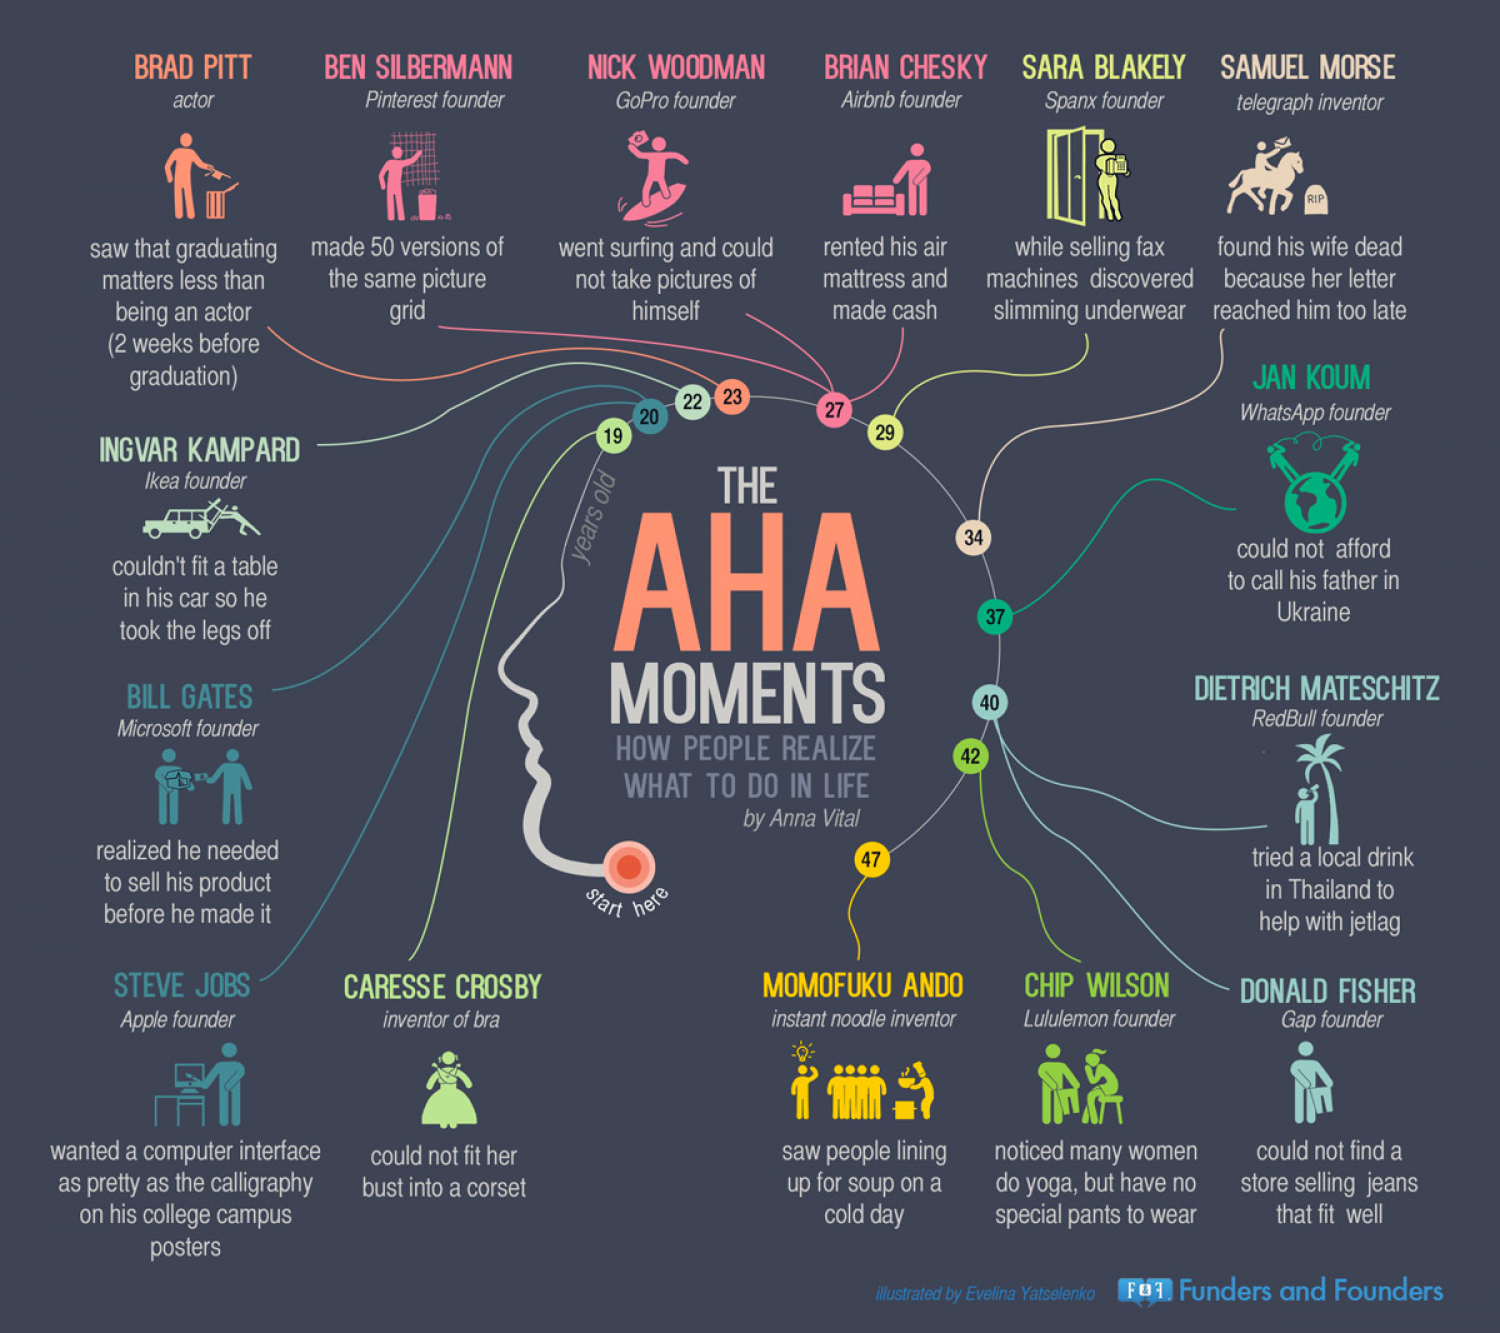 The Aha Moments: How People Realize What to Do in Life Infographic